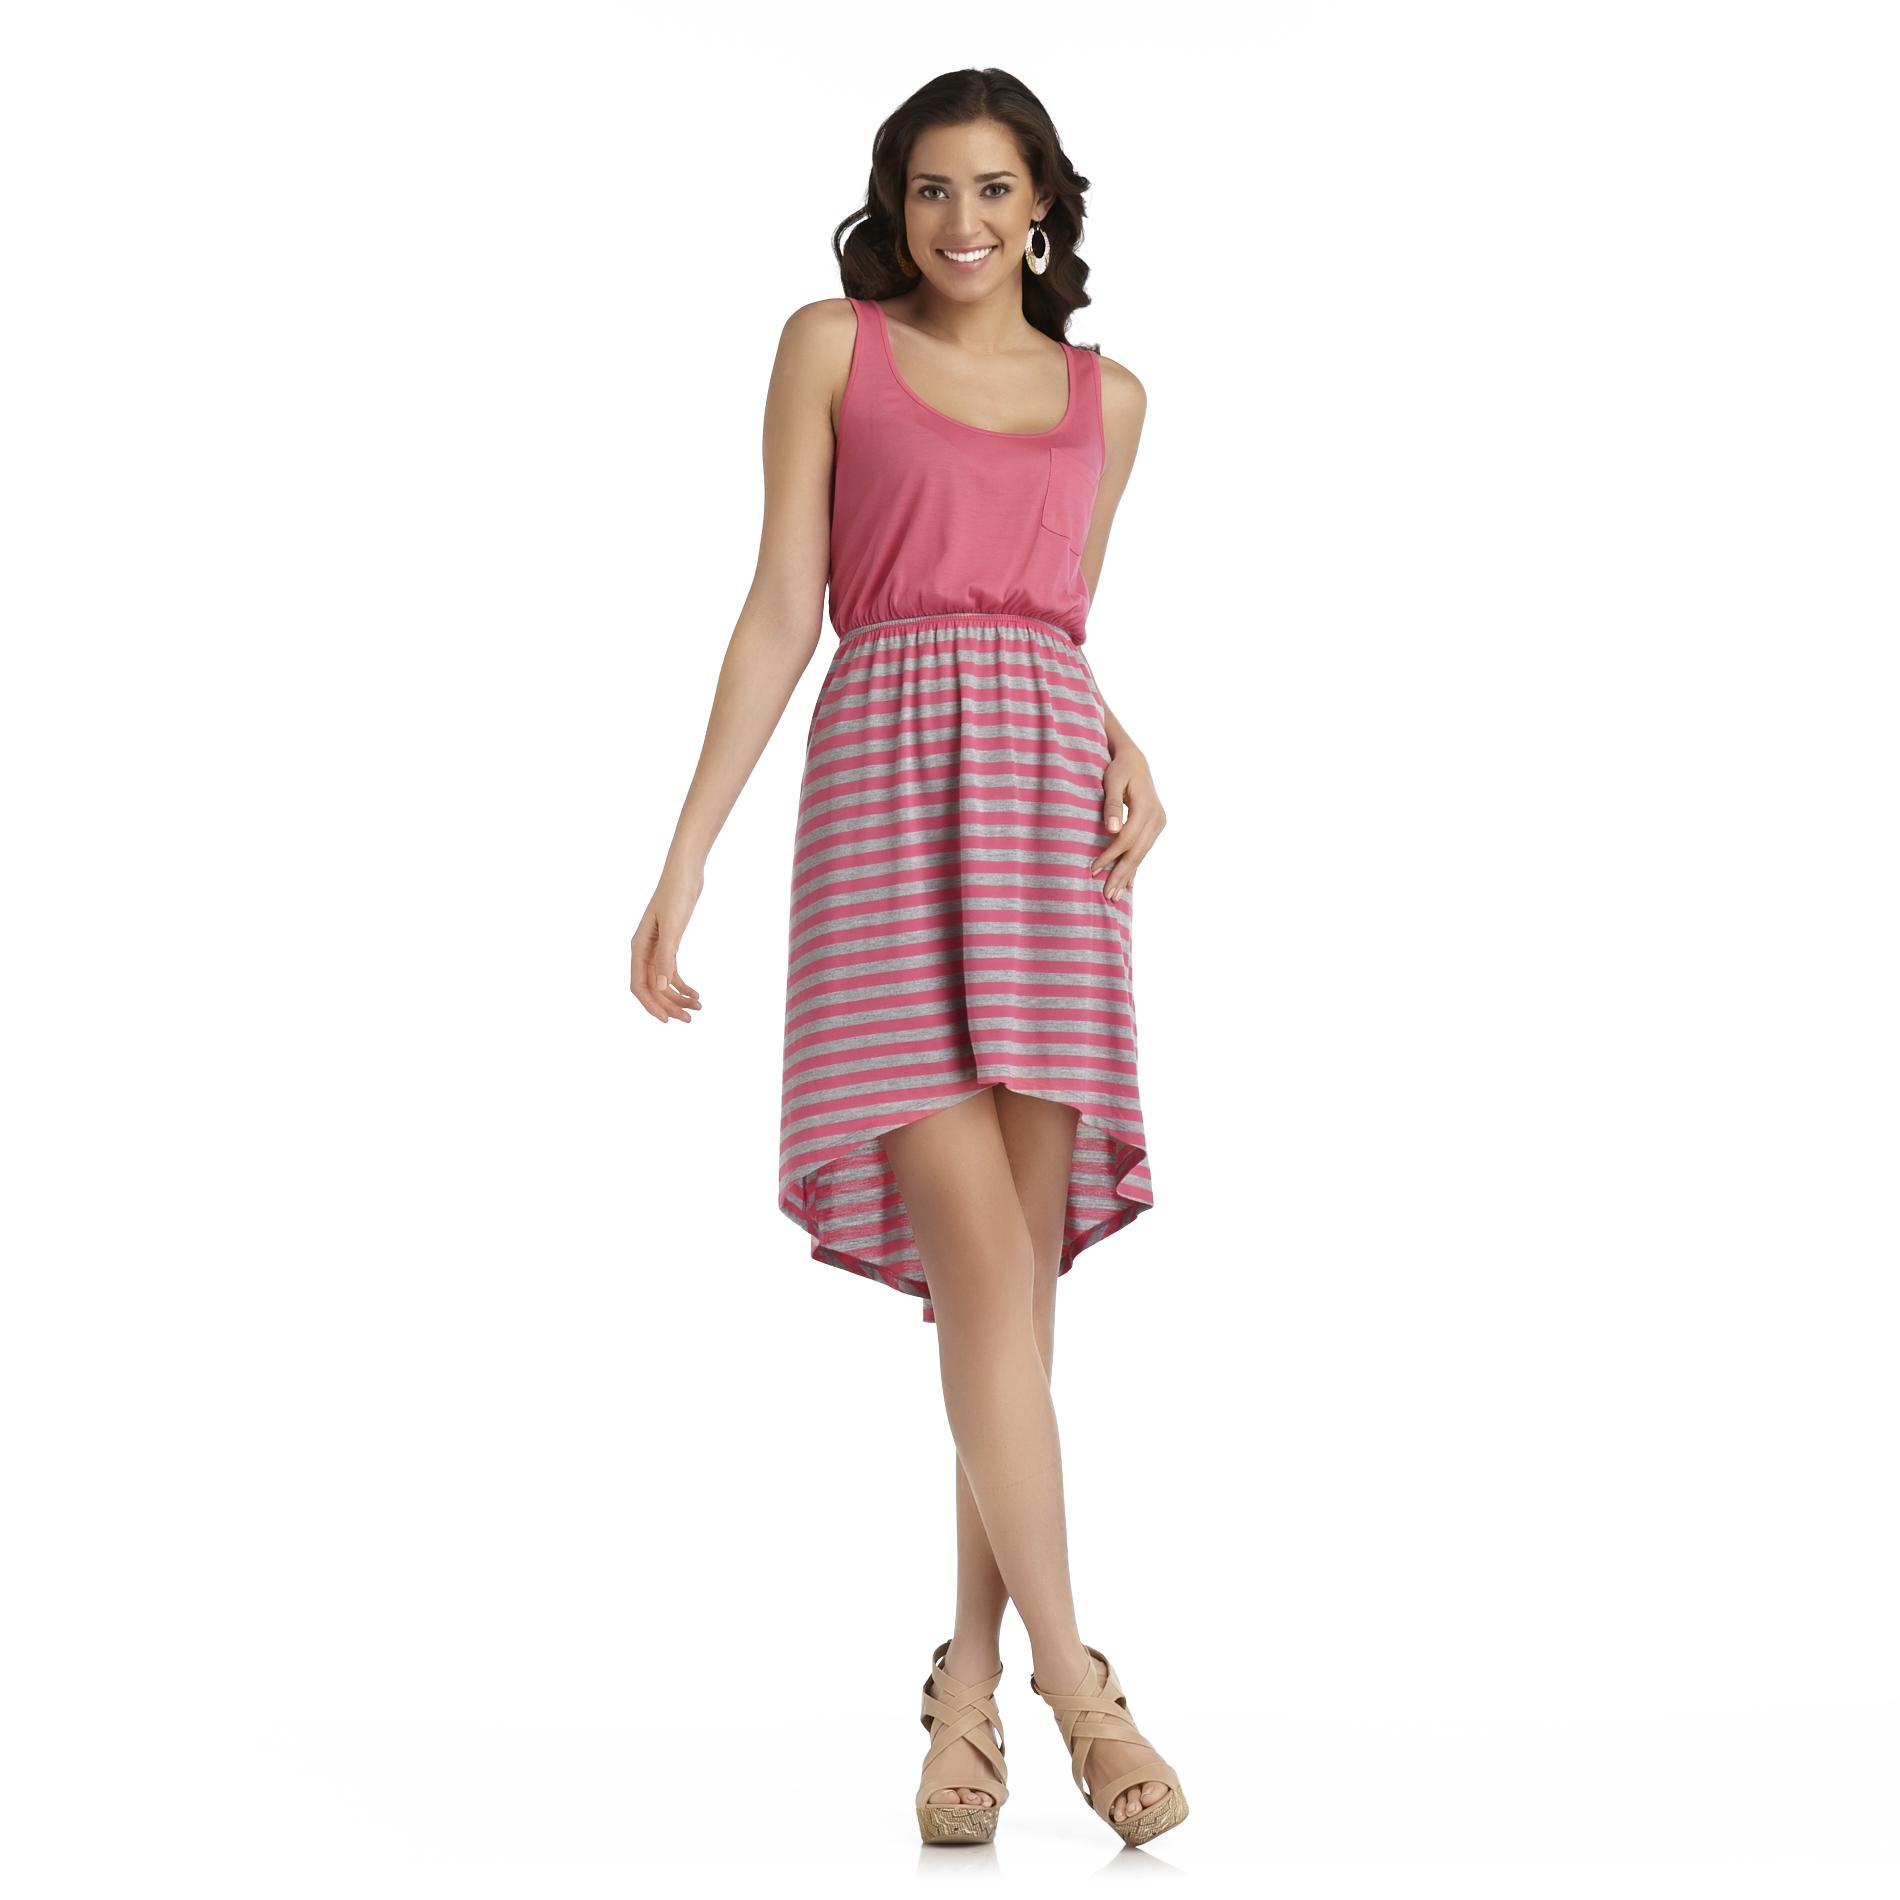 Joe by Joe Boxer Women's High-Low Tank Dress - Striped Skirt at Sears.com